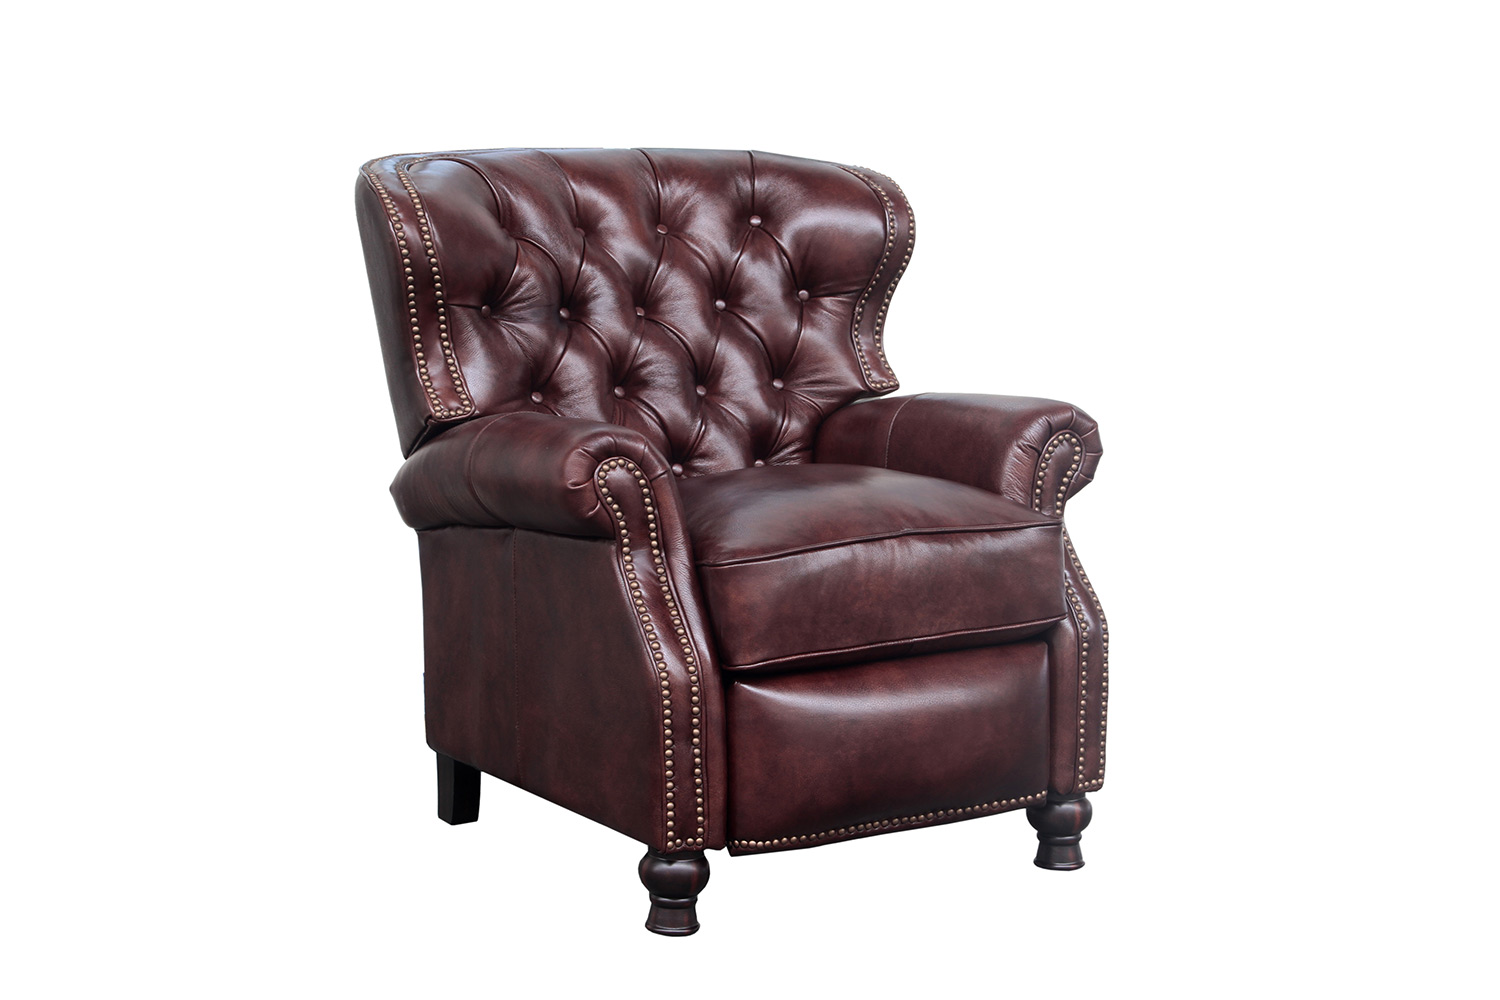 Barcalounger Presidential Recliner Chair - Wenlock Fudge/All Leather